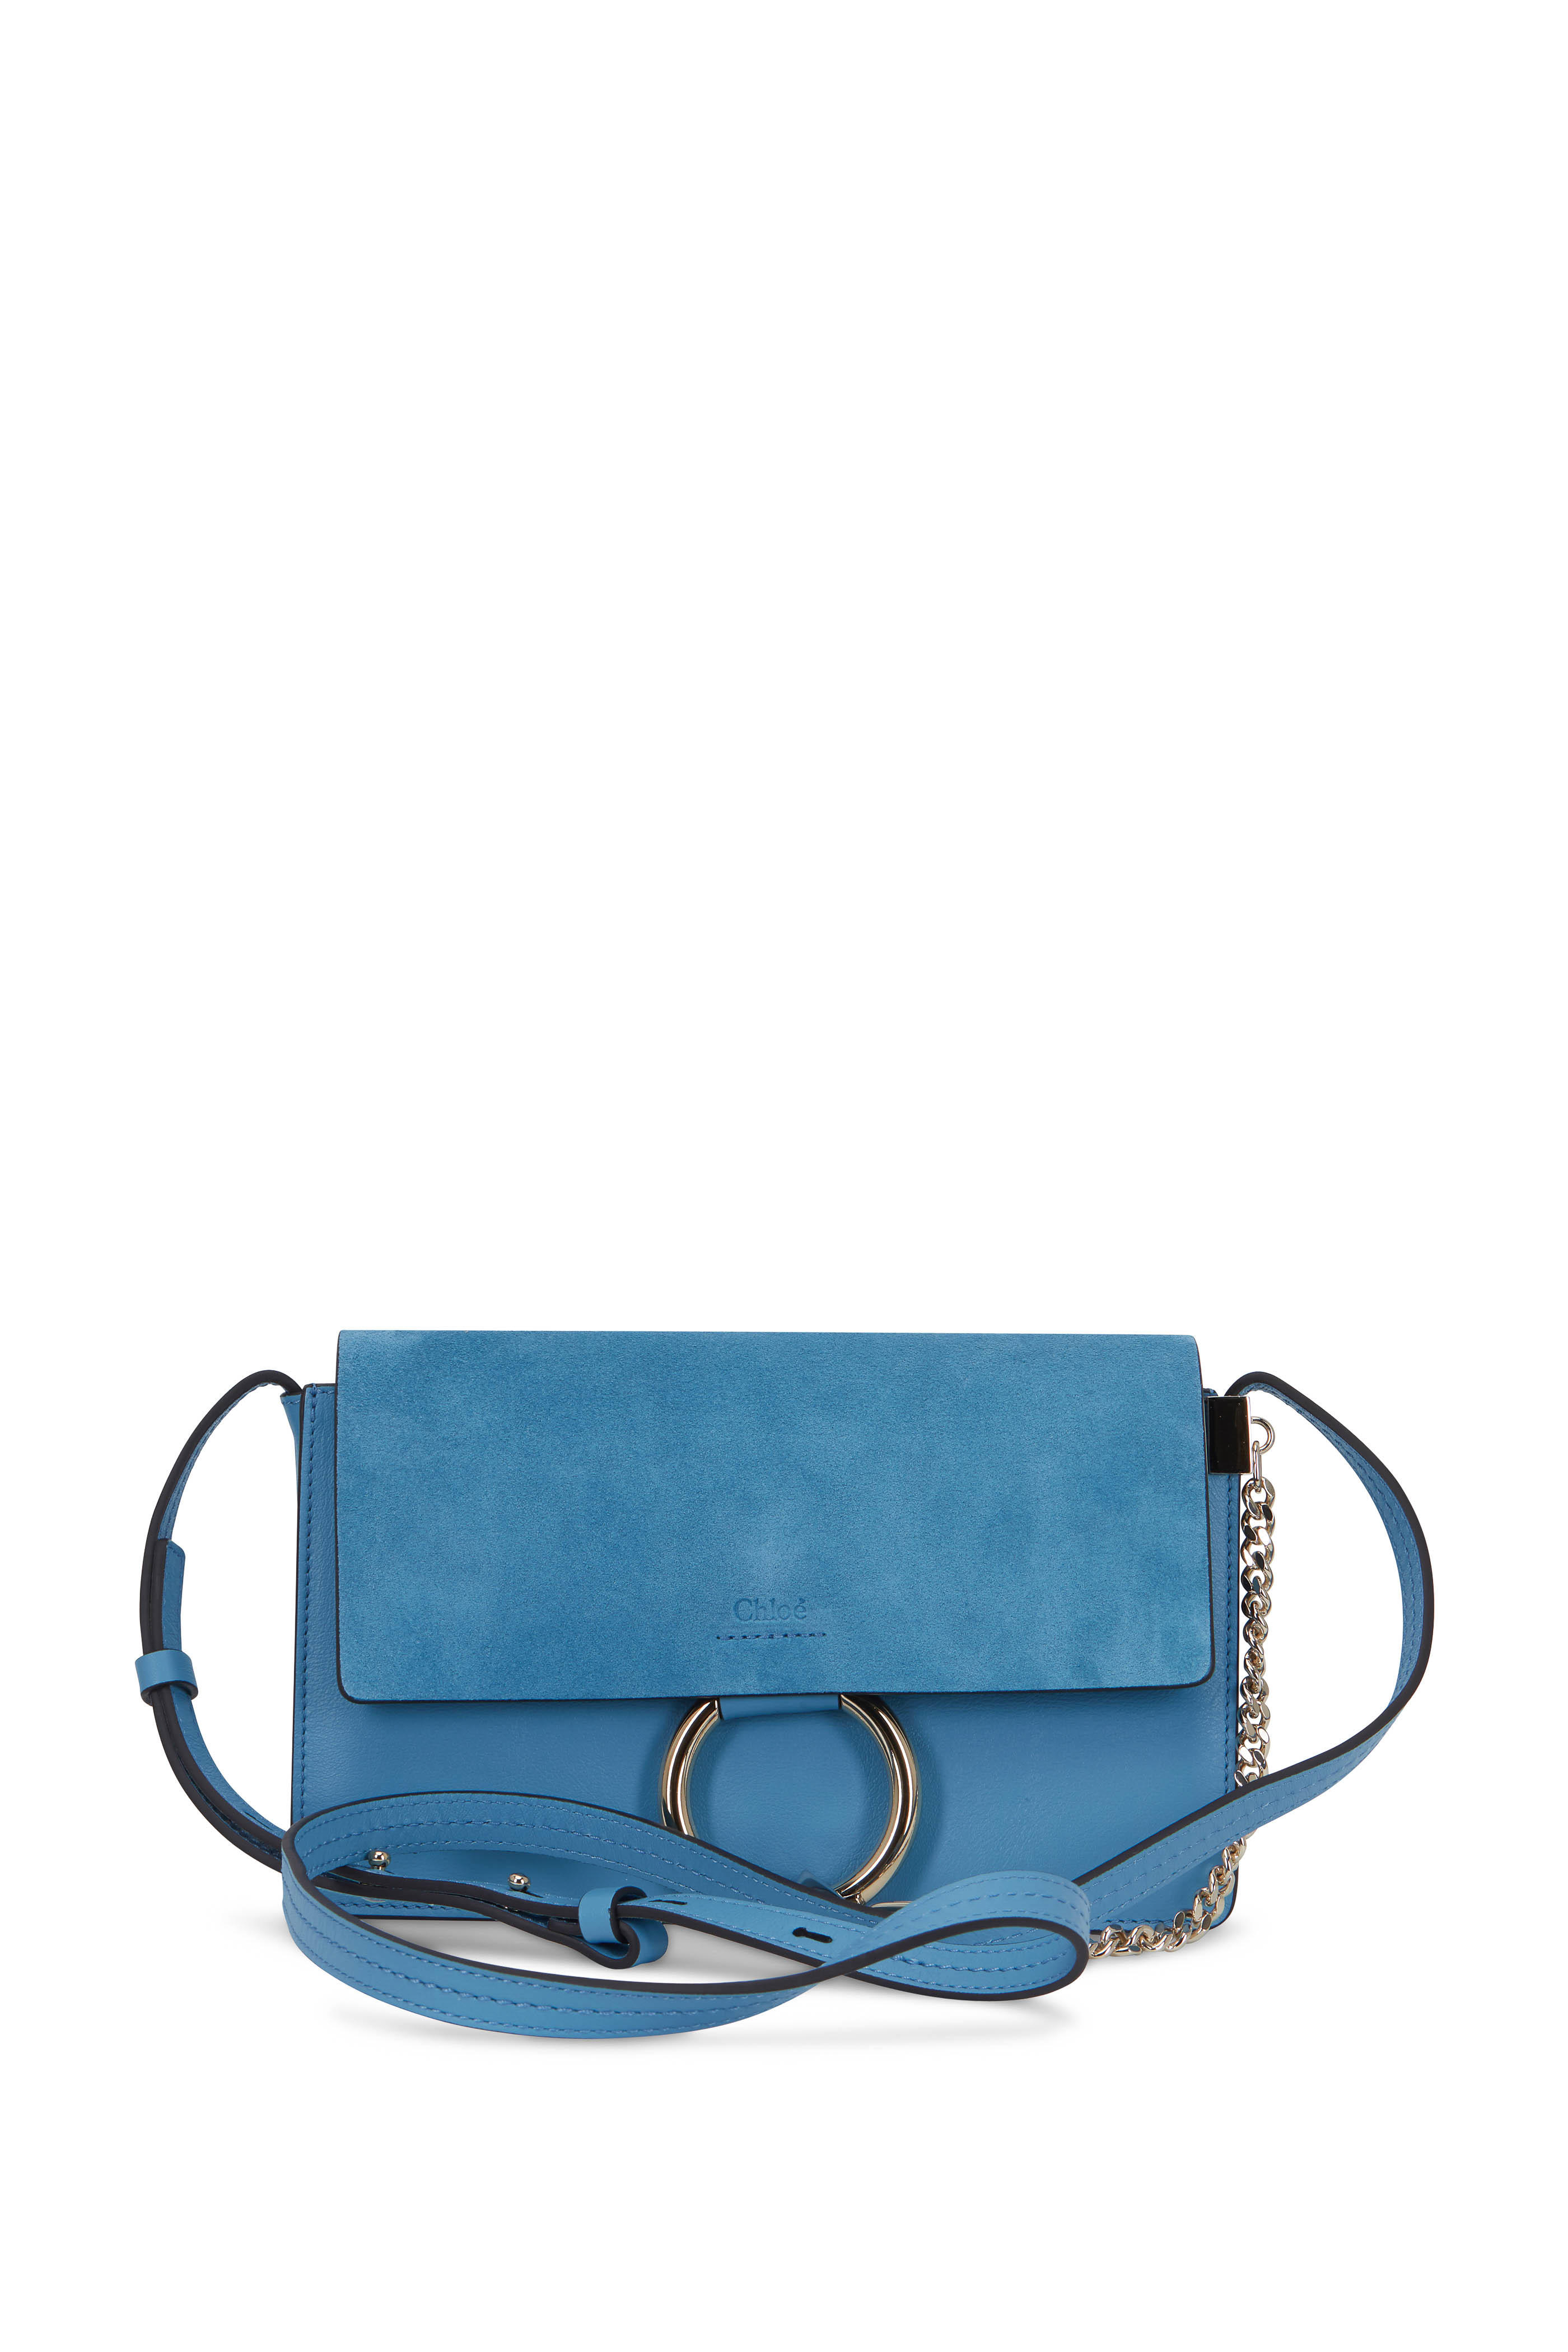 6148a5f3 Chloé - Faye Tomboy Blue Leather & Suede Crossbody | Mitchell Stores